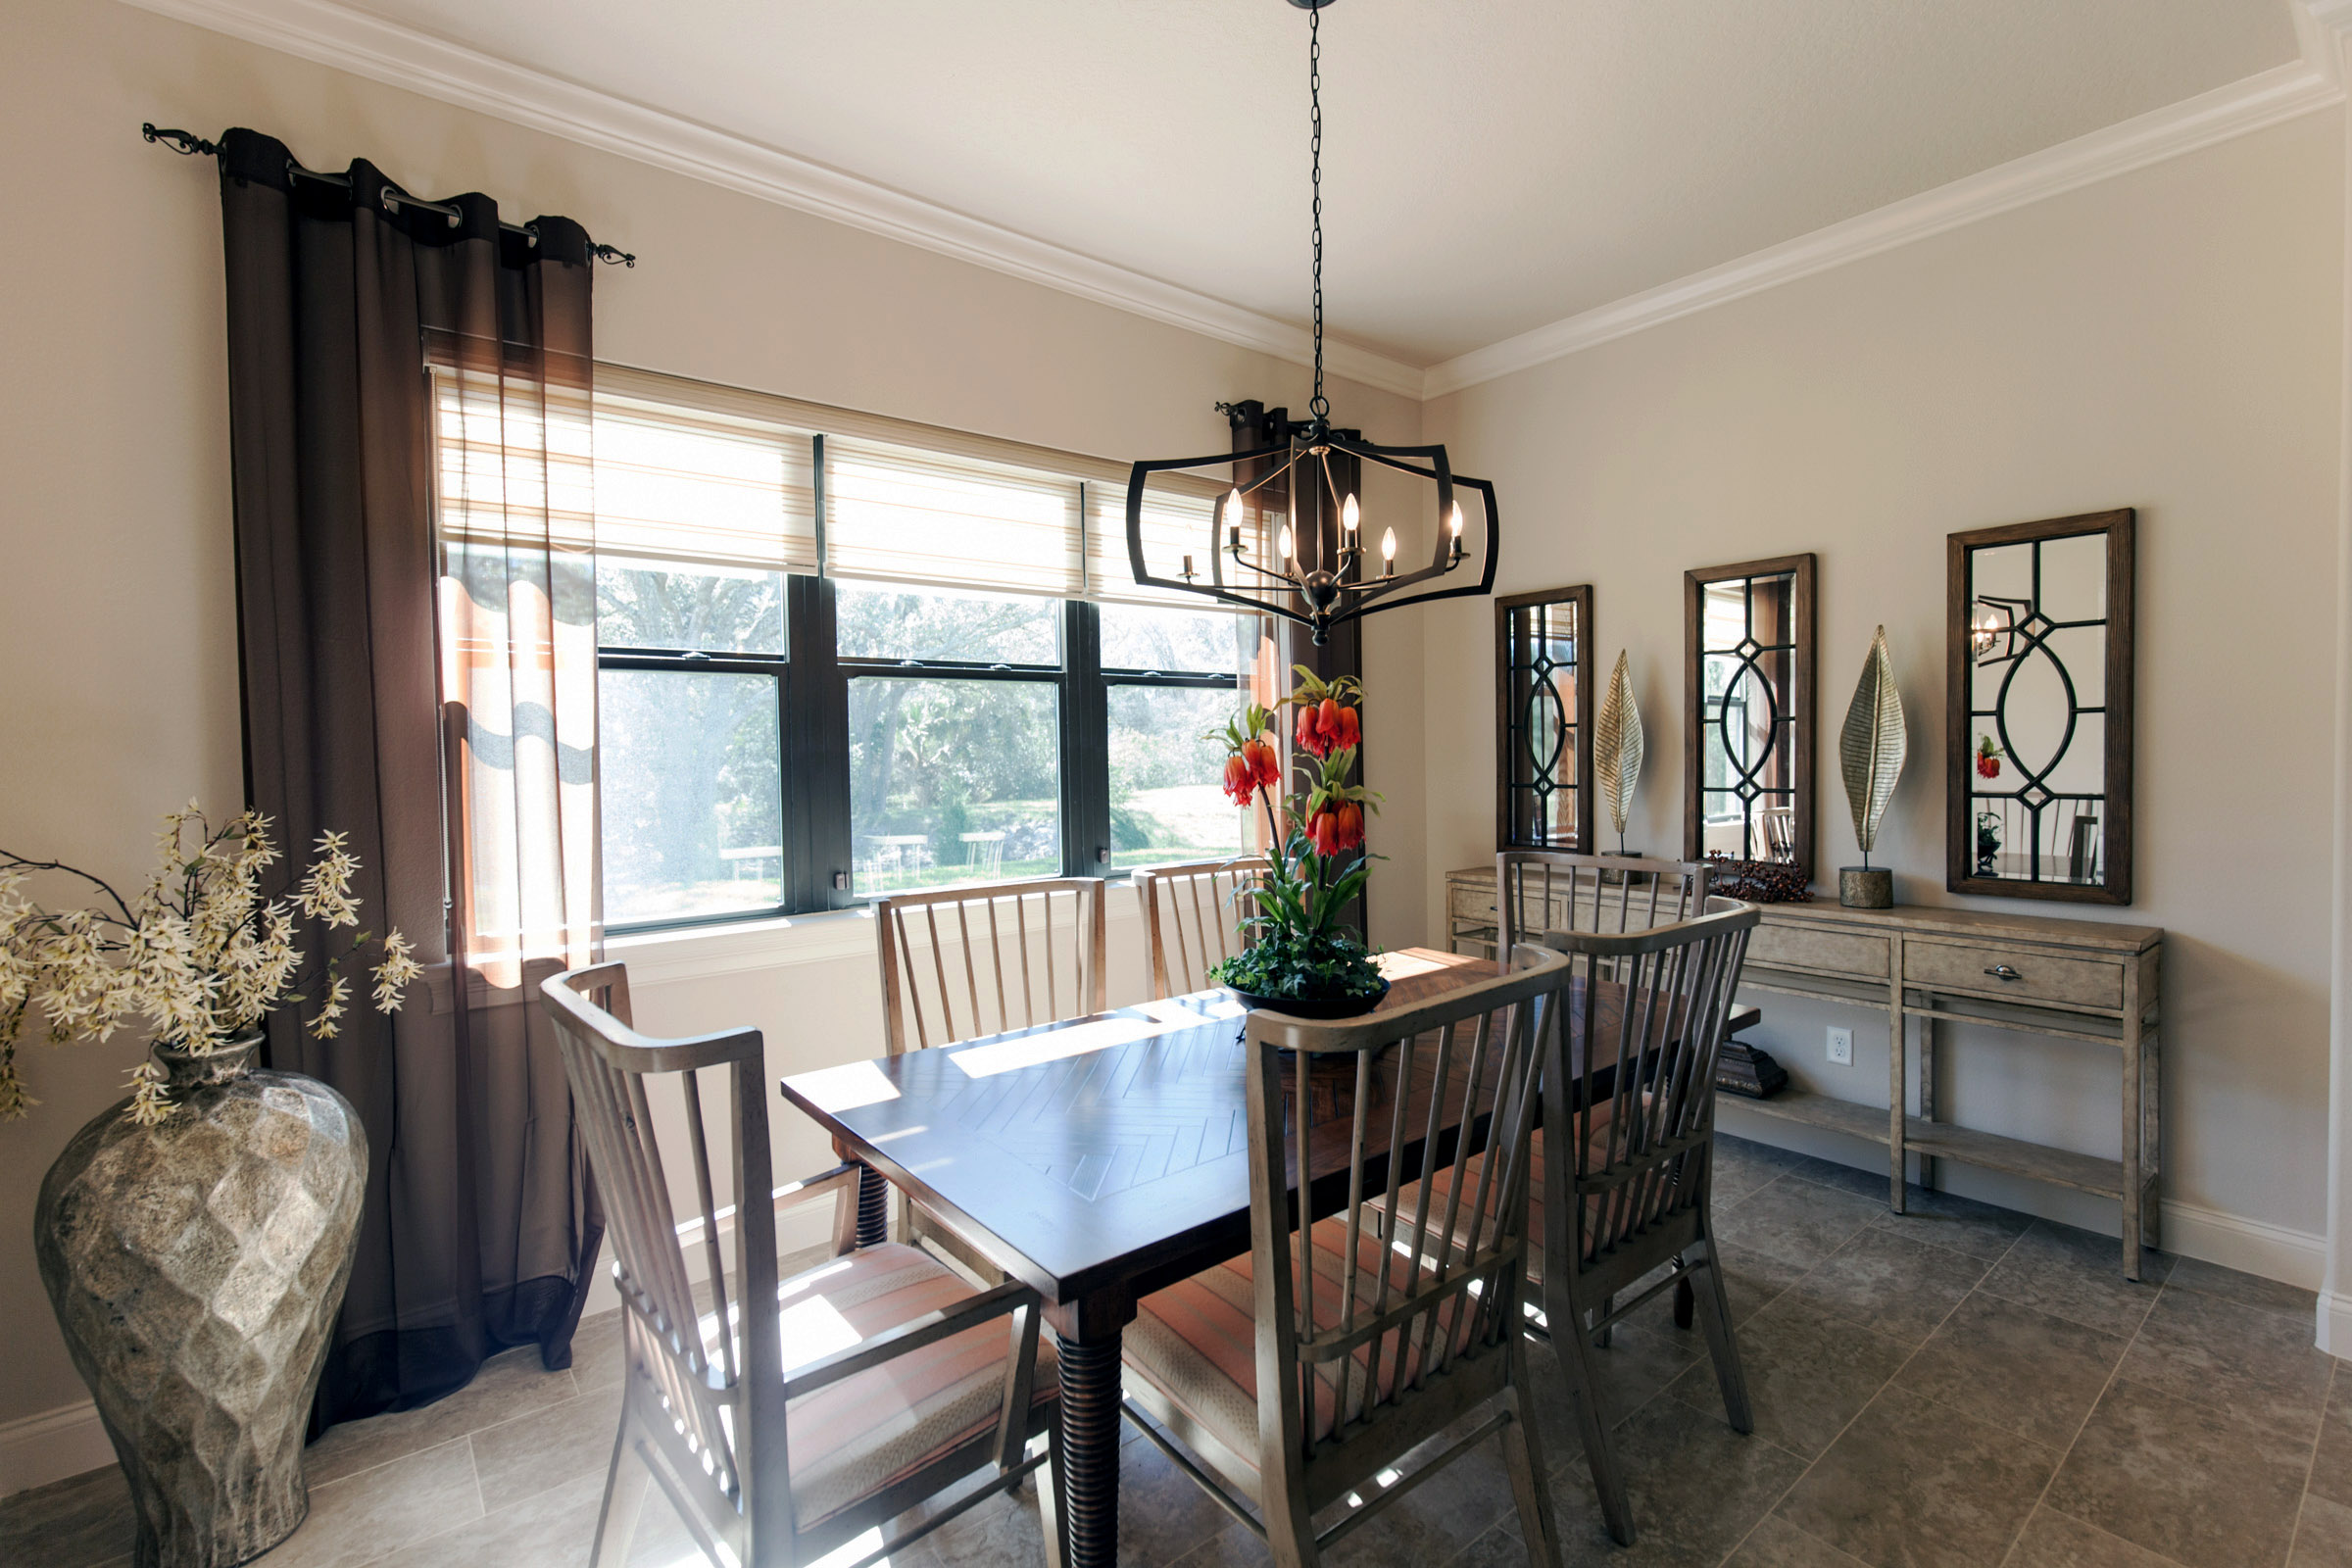 Dining area with wood table and chairs and large open windows